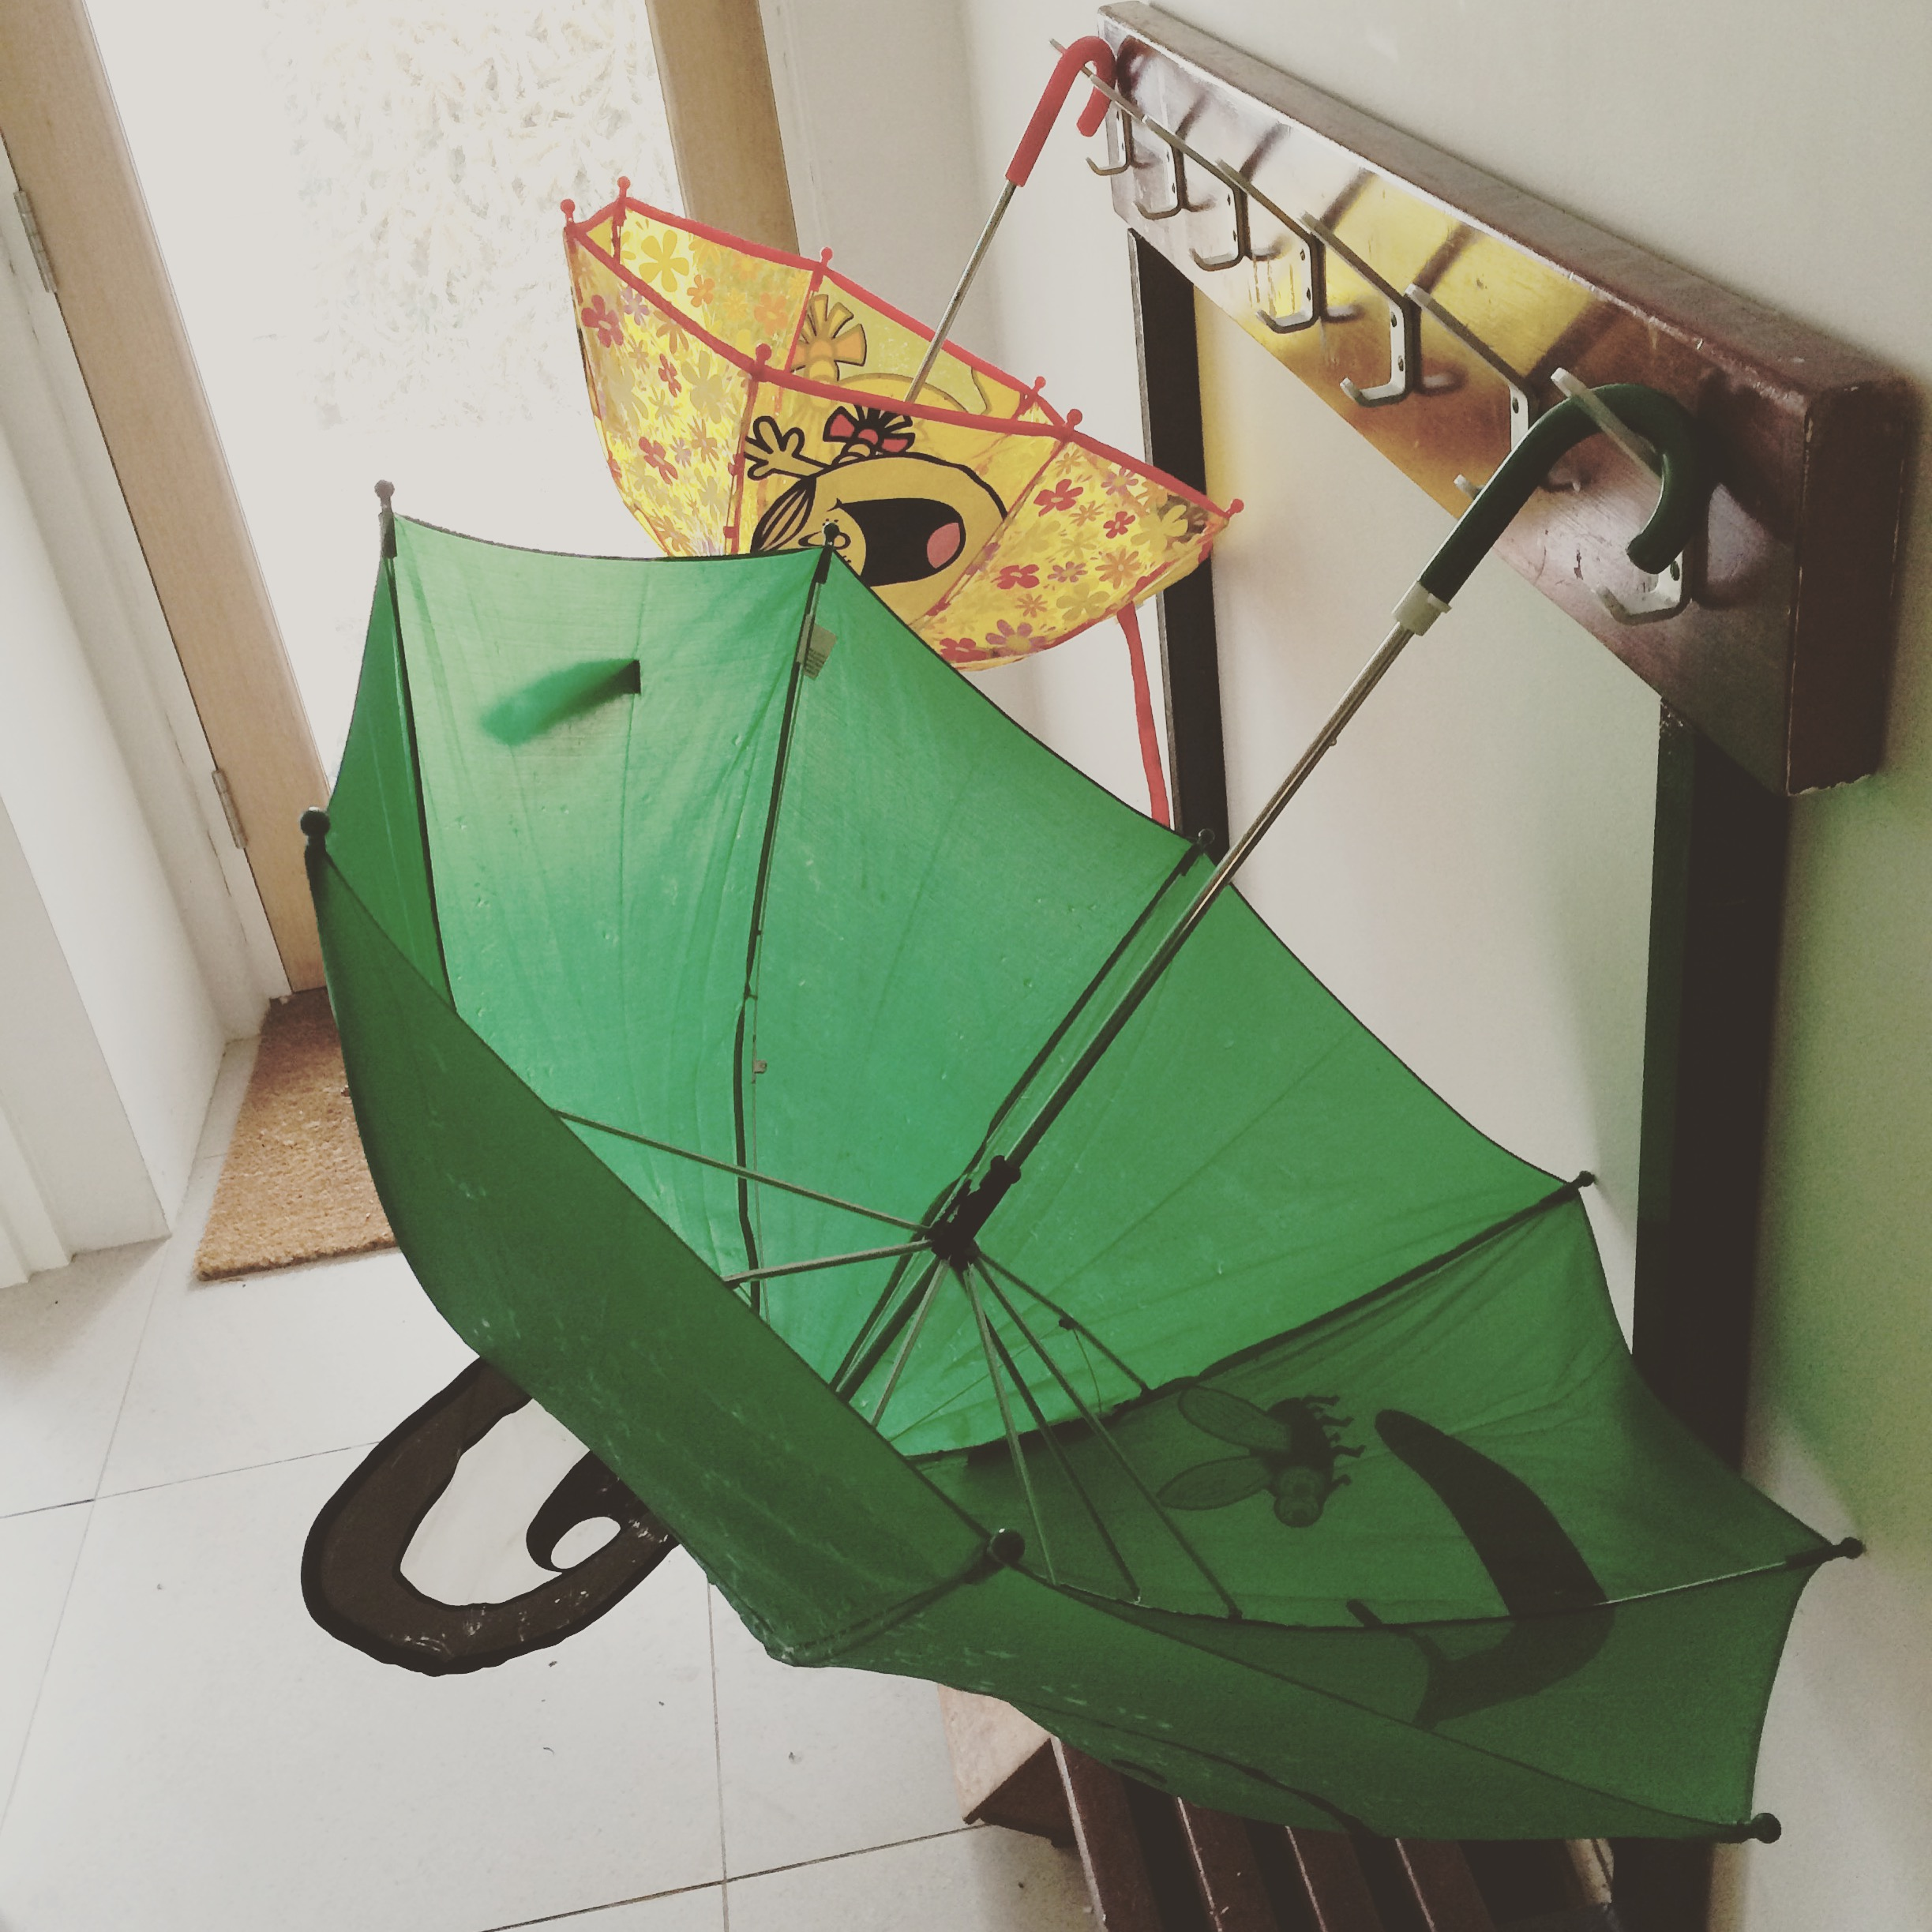 This is how I found the umbrellas after the children came in from the garden!!